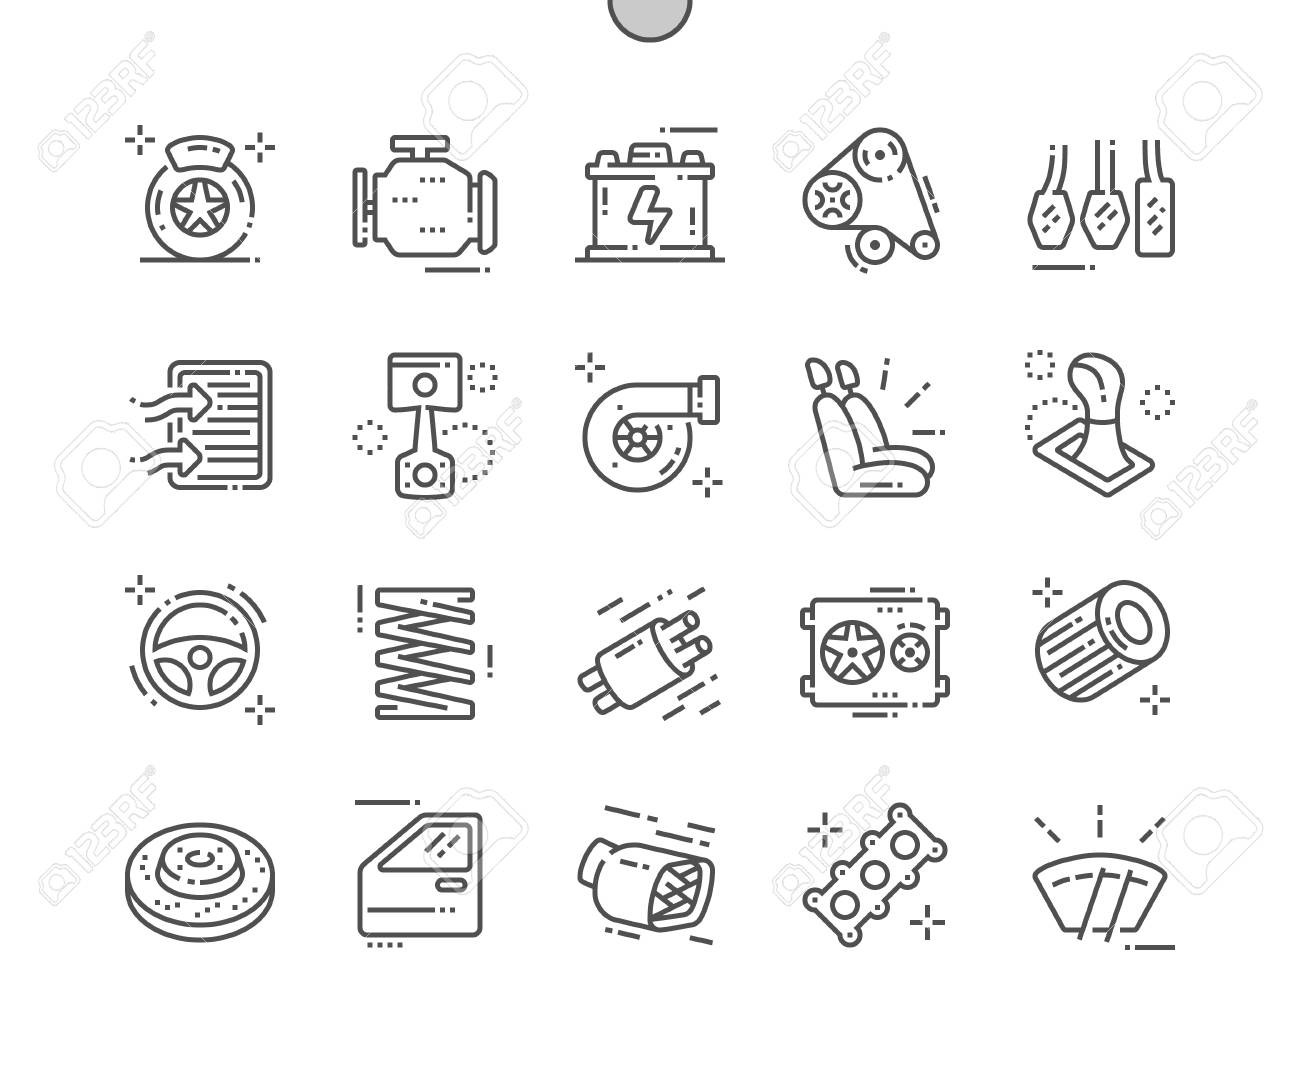 Auto parts Well-crafted Pixel Perfect Vector Thin Line Icons 30 2x Grid for Web Graphics and Apps. Simple Minimal Pictogram - 121129481